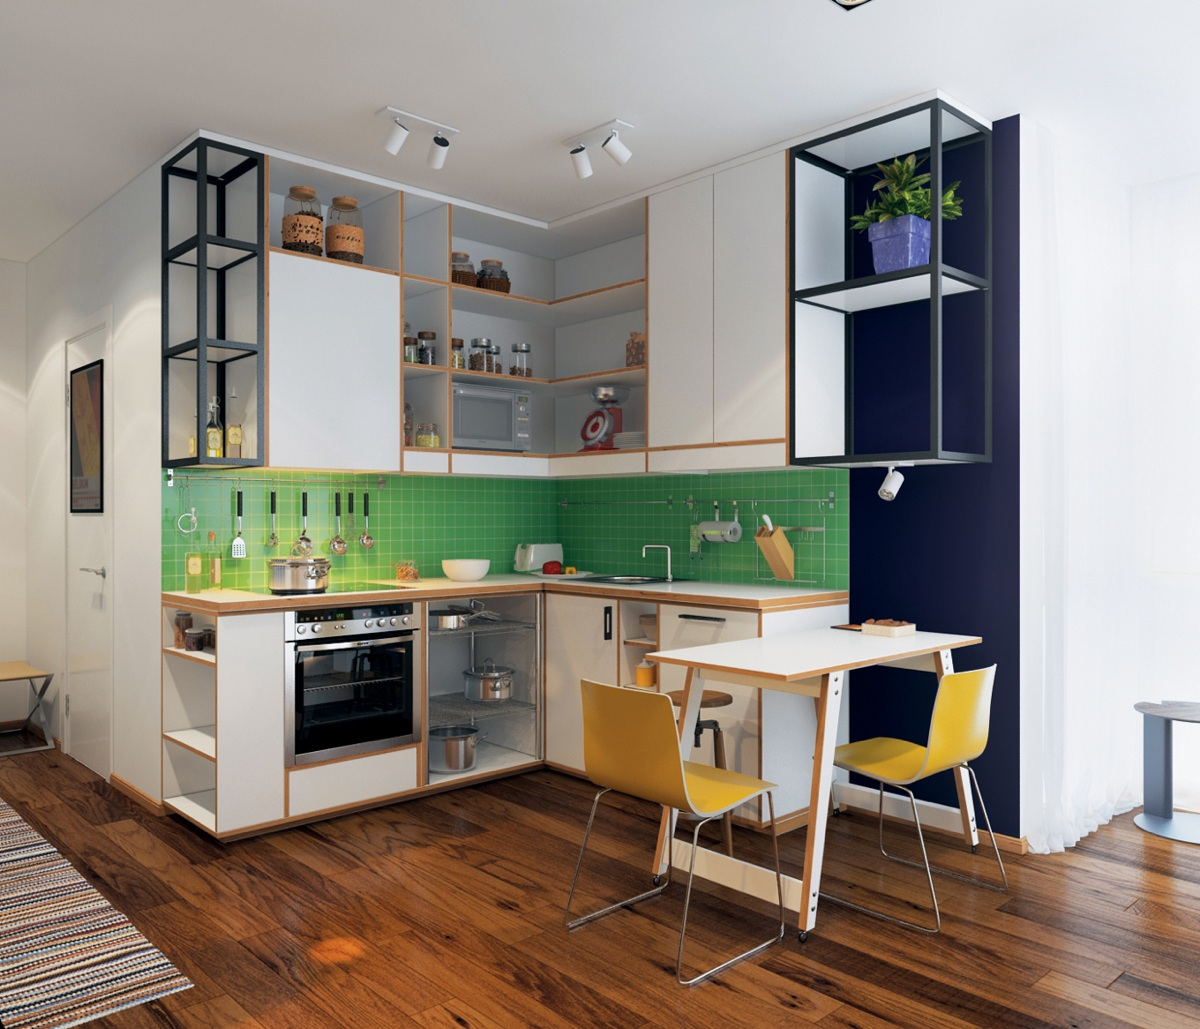 Kitchen Design With Breakfast Bar Homes Under 400 Square Feet 5 Apartments That Squeeze